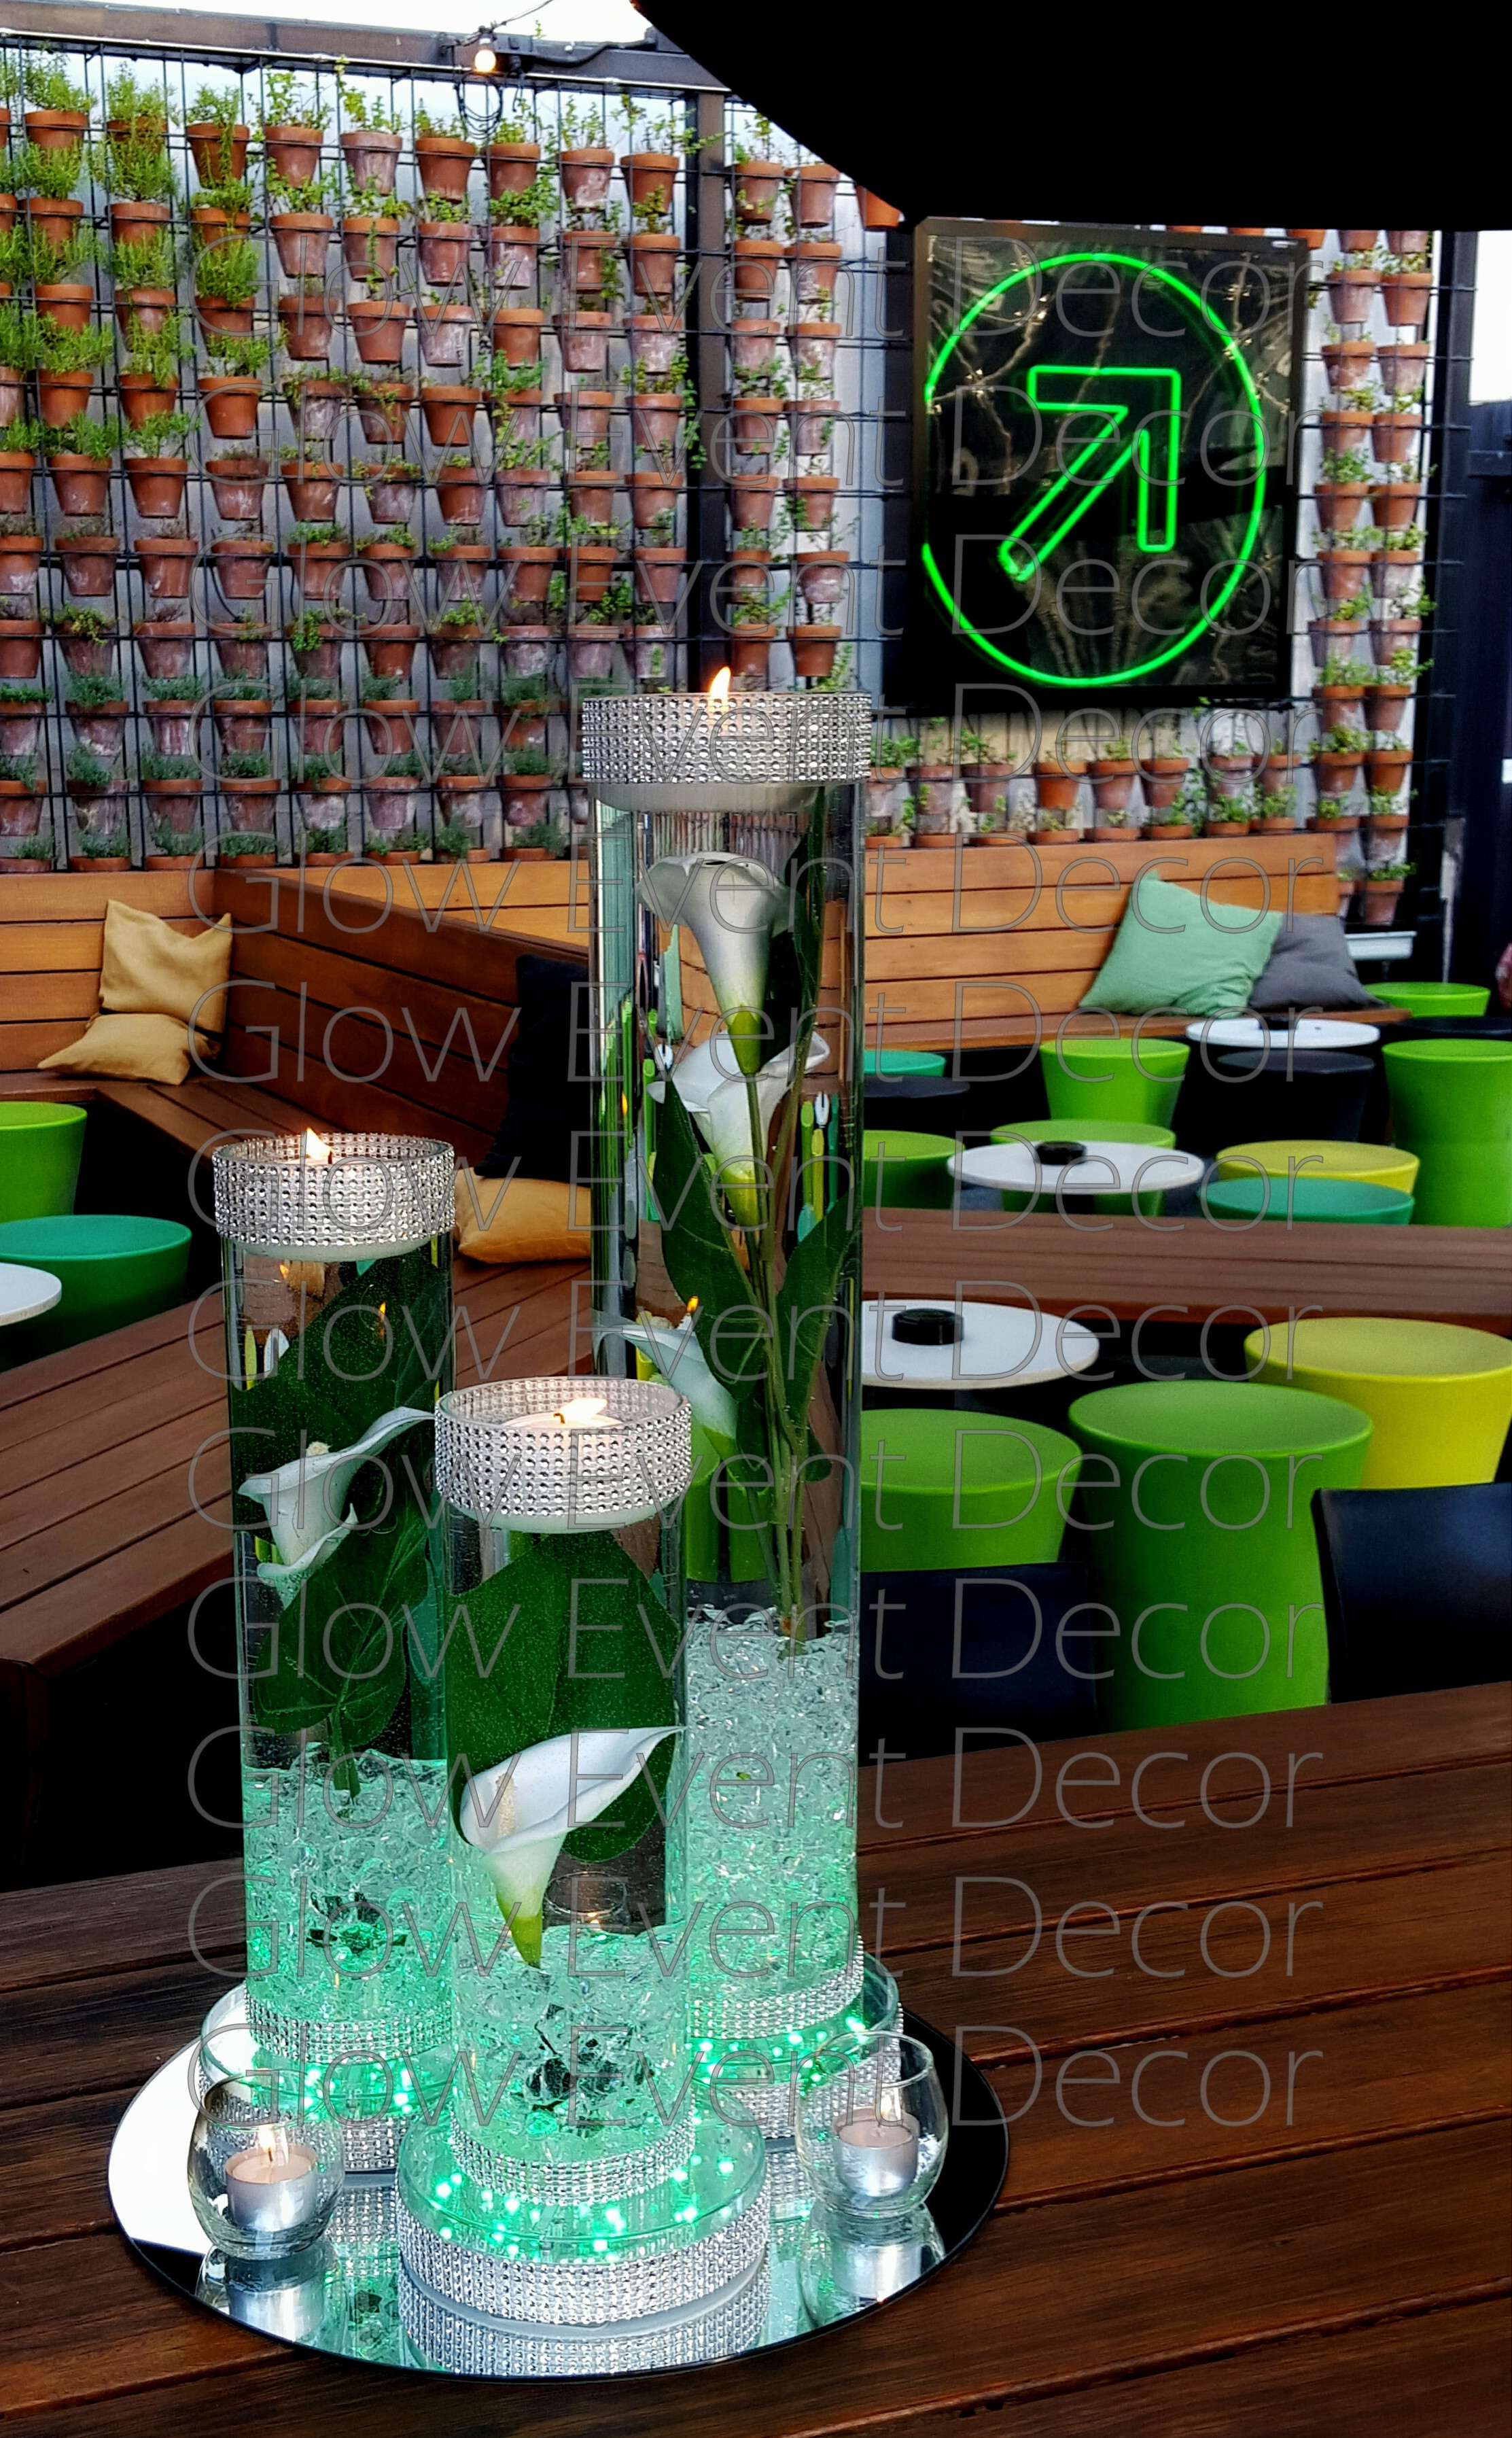 flower arrangements in cylinder vases of led orchid cylinder vase glow event decor inside trio of cylinder vases with floating candles submersible flowers for wedding bridal table centrepiece decorations